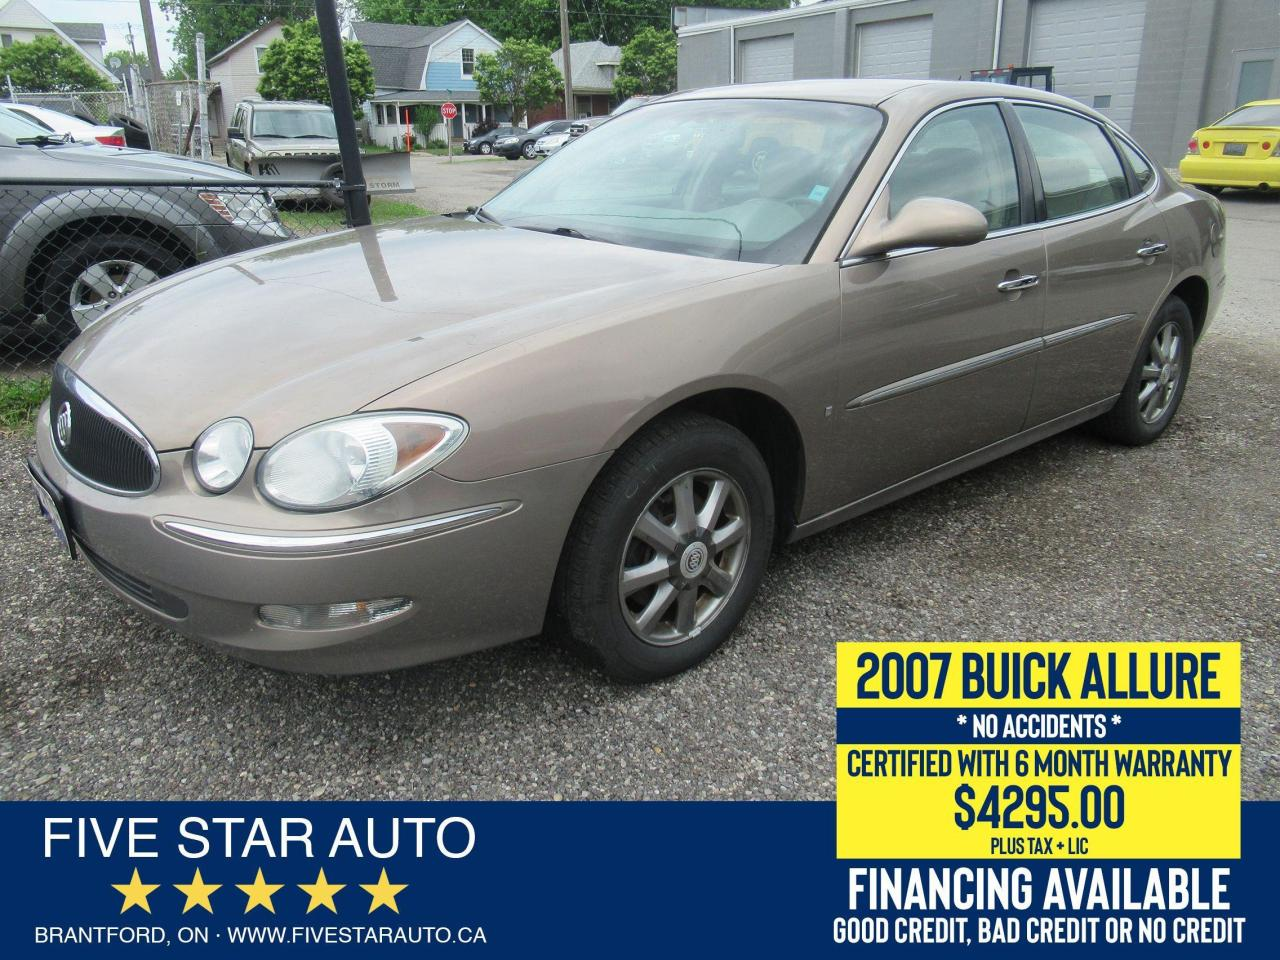 2007 Buick Allure CXL *No Accidents* Certified + 6 Month Warranty